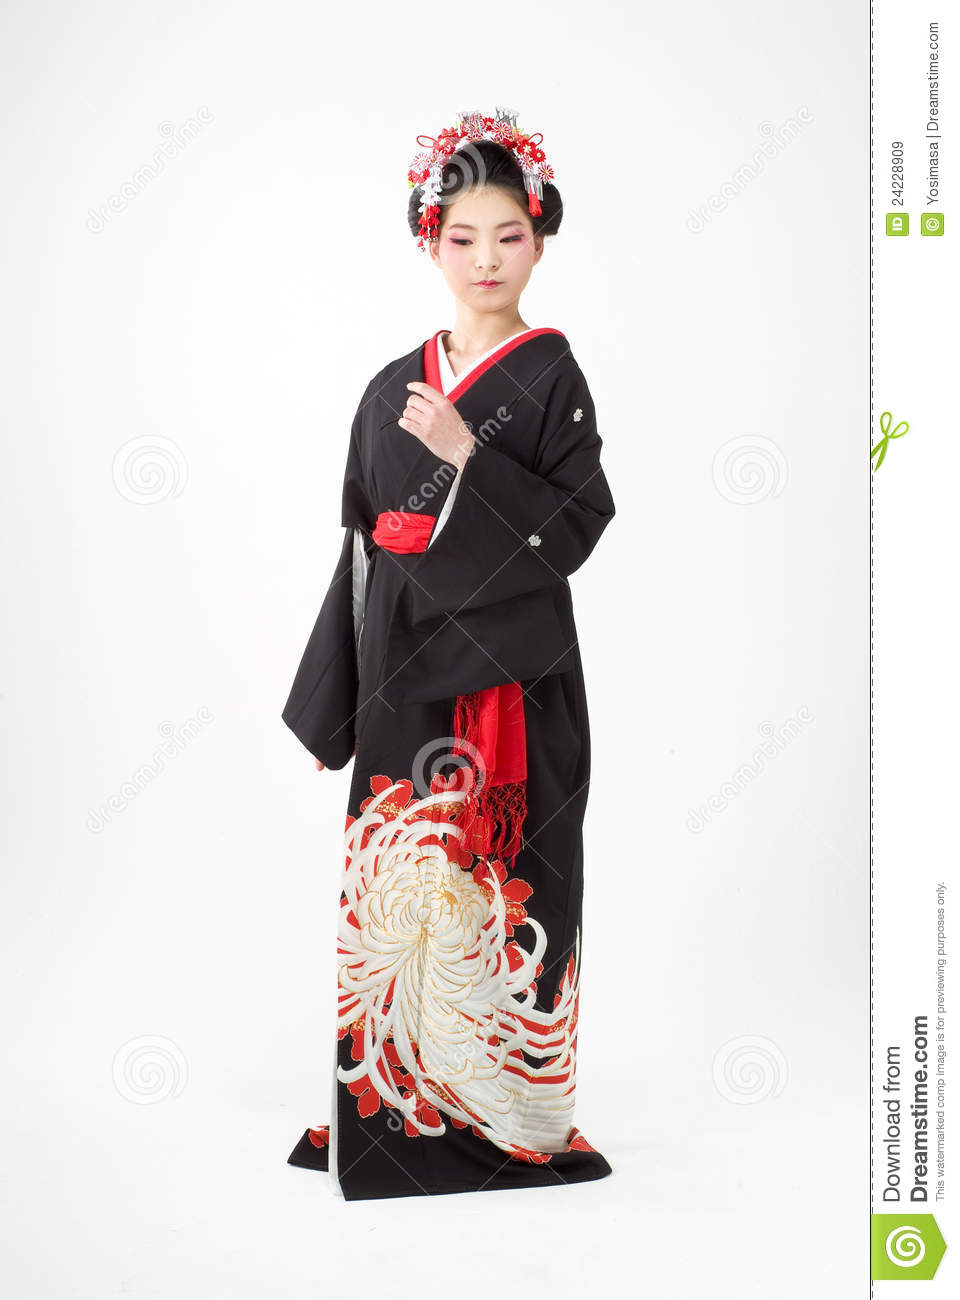 fille japonaise de kimono image stock image du attrayant 24228909. Black Bedroom Furniture Sets. Home Design Ideas